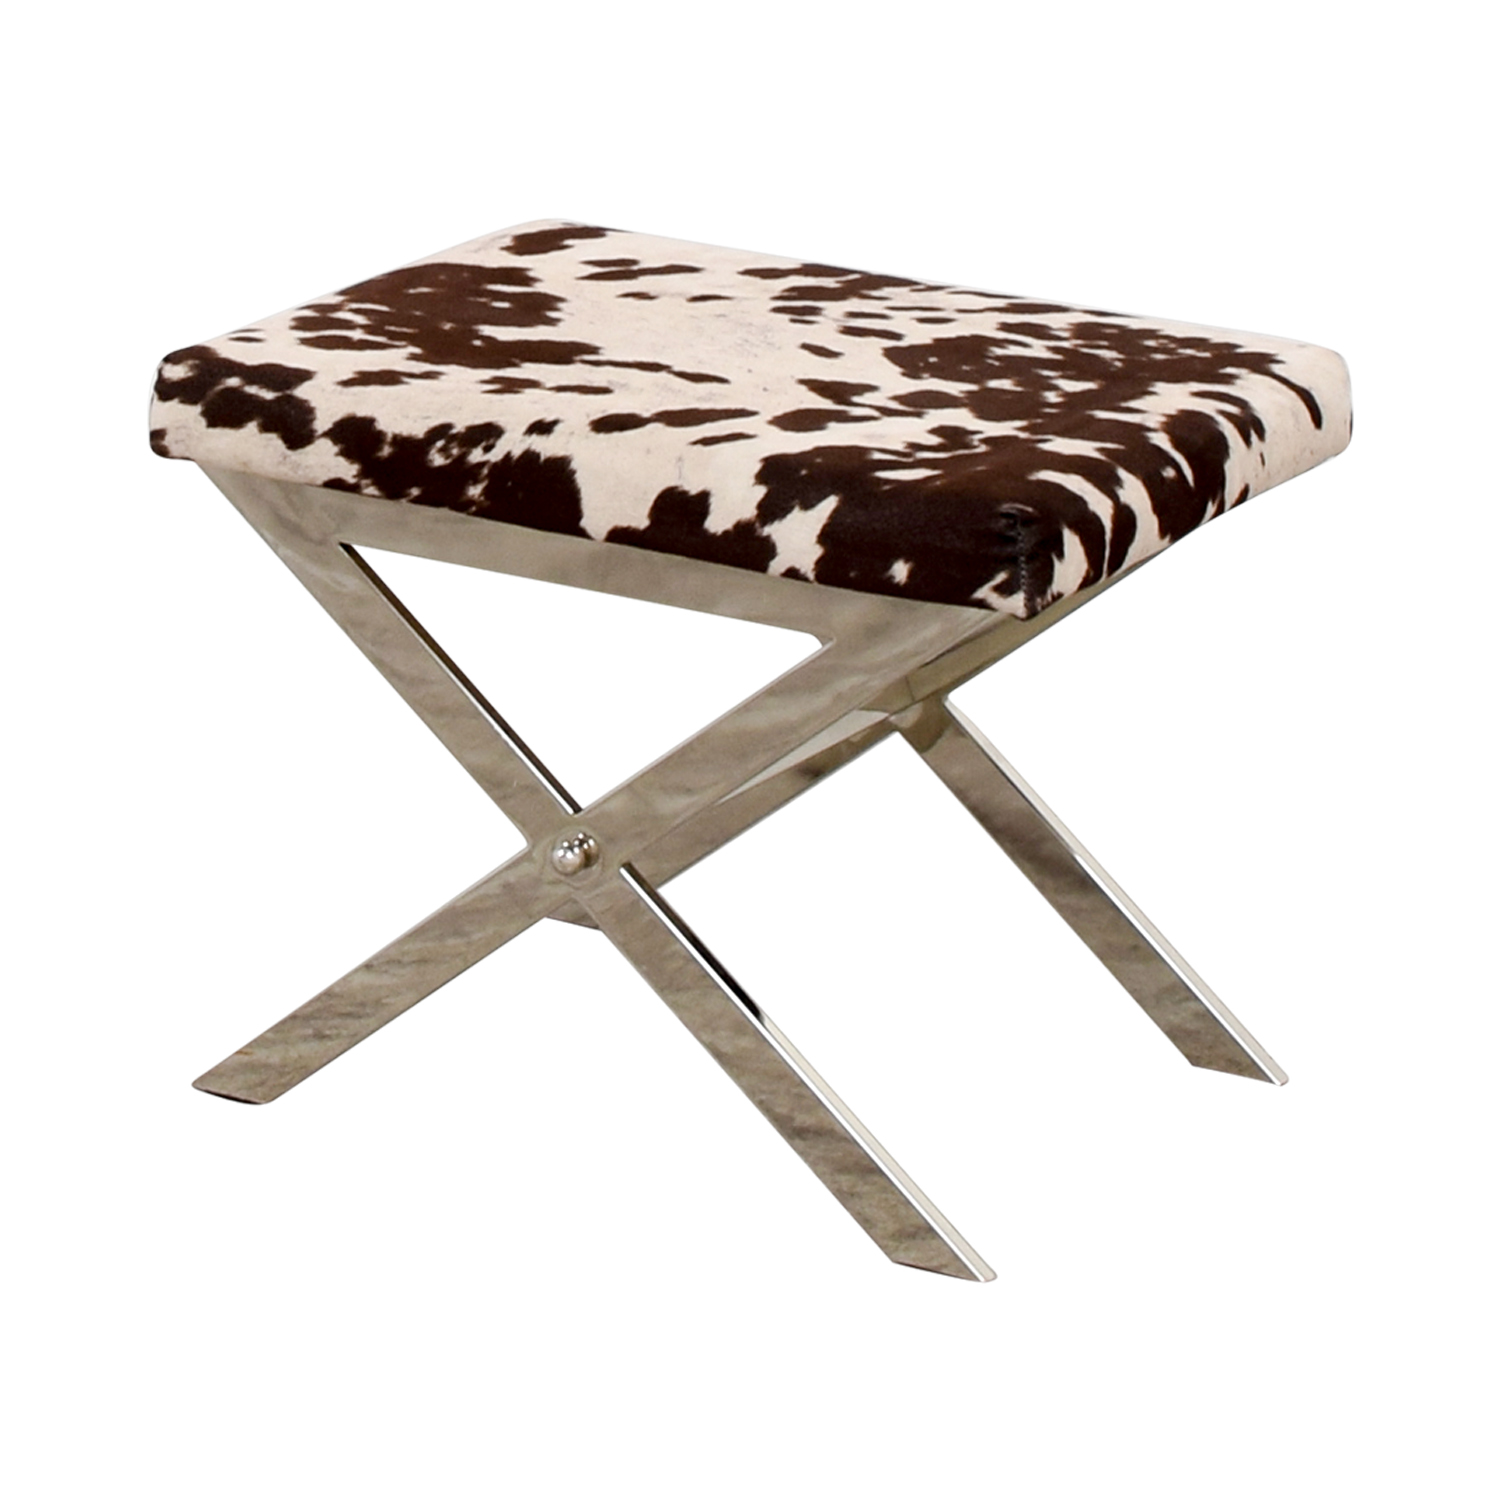 Swell 68 Off Black And White Cow Print Stool Chairs Dailytribune Chair Design For Home Dailytribuneorg